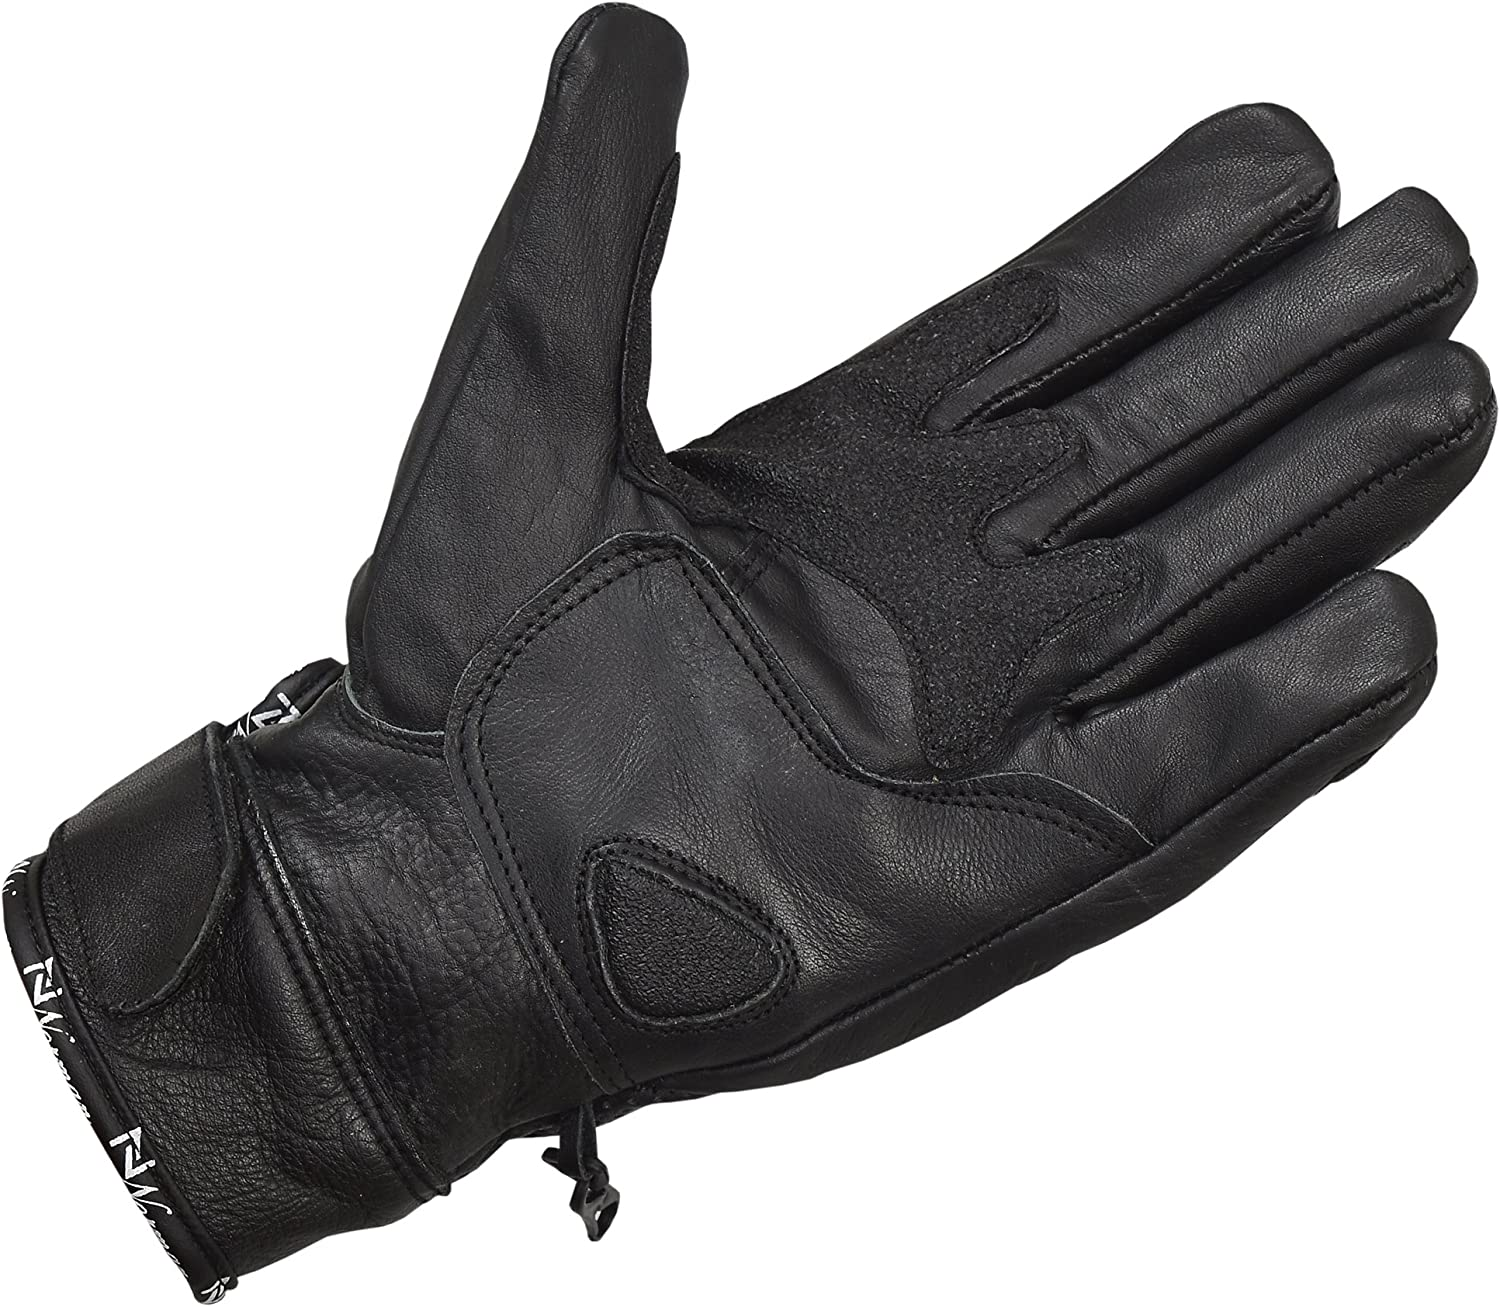 Black Leather Motorcycle Gloves Motorbike Carbon Knuckle Sports Racing